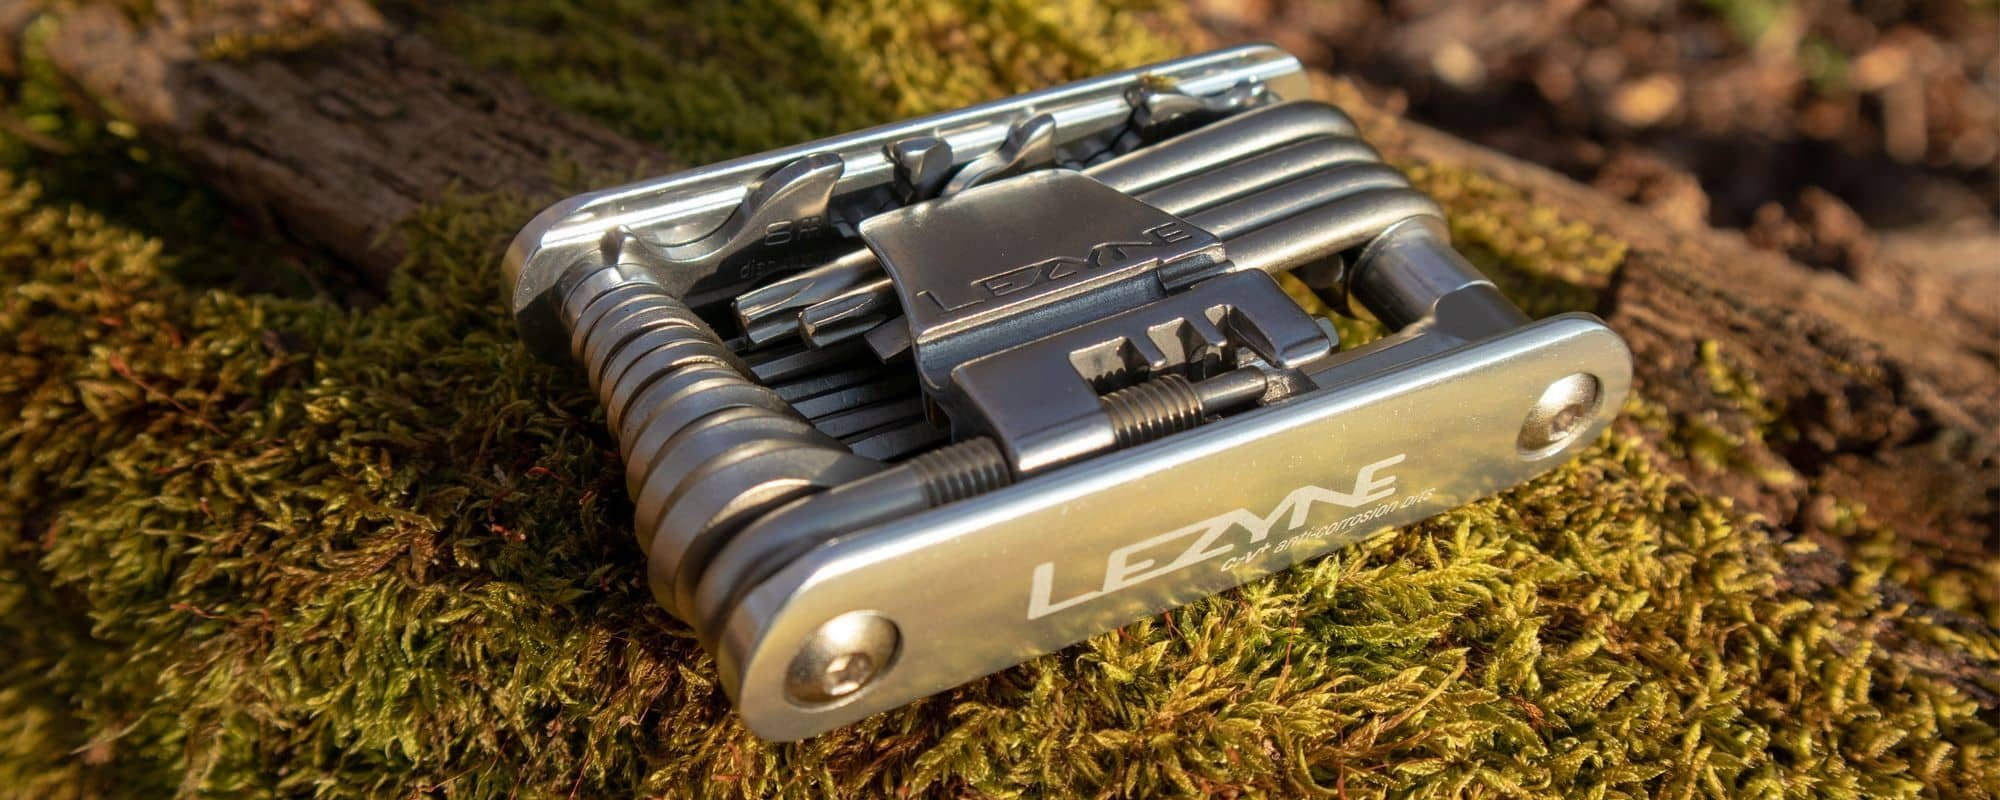 Lezyne Blox 23 Review - Heavyweight Multitool with excellent workmanship and reliable tools